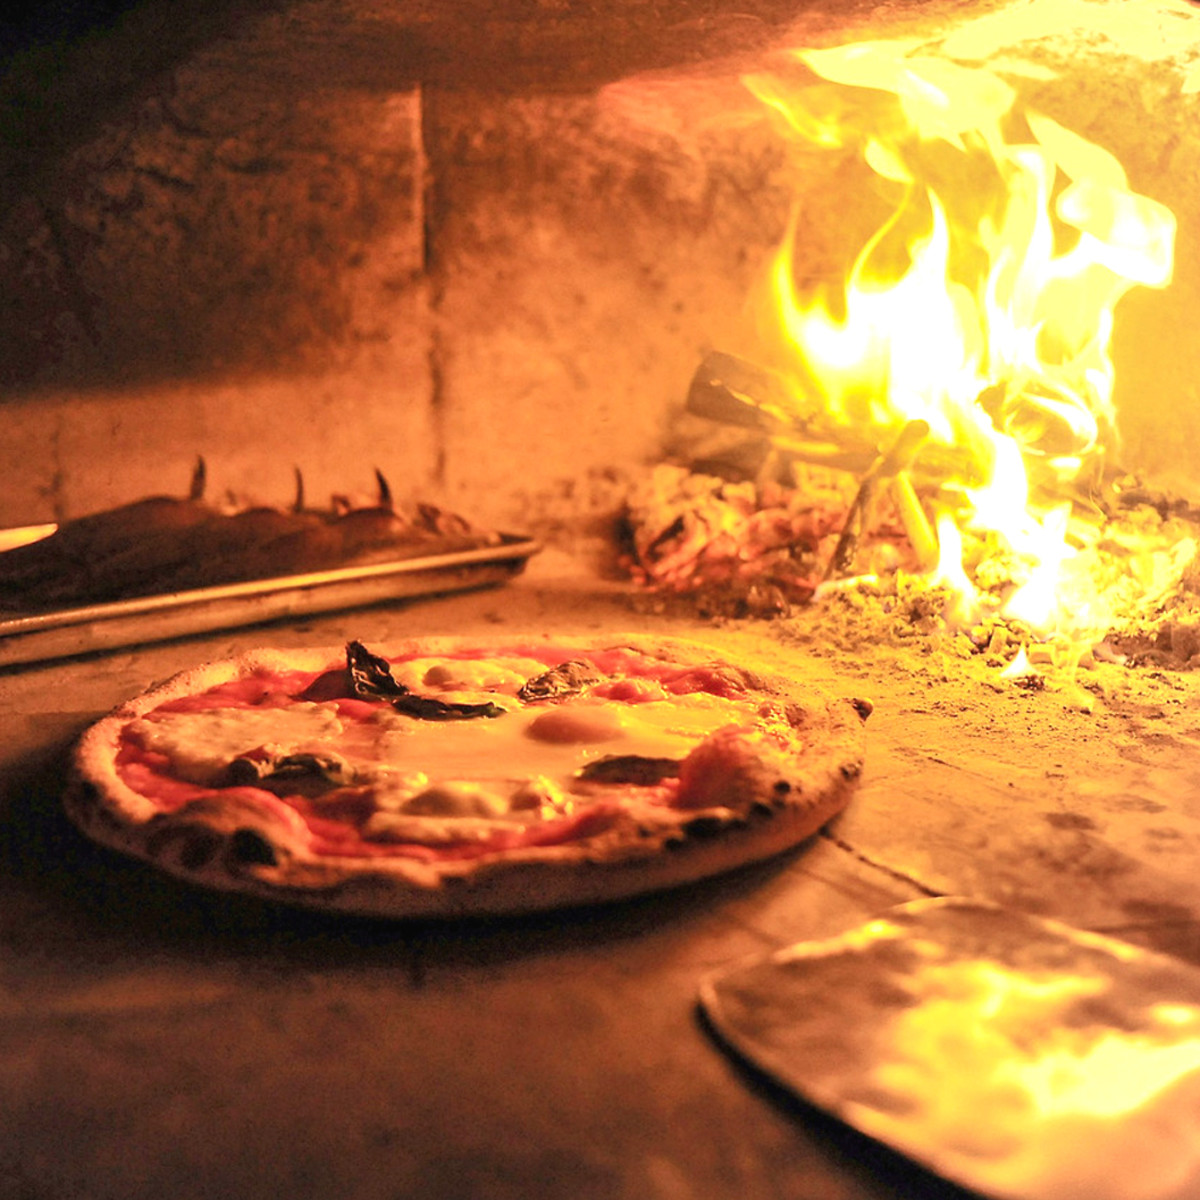 Debora Smail Da Marco Cucina E Vino pizza in pizza oven with fire